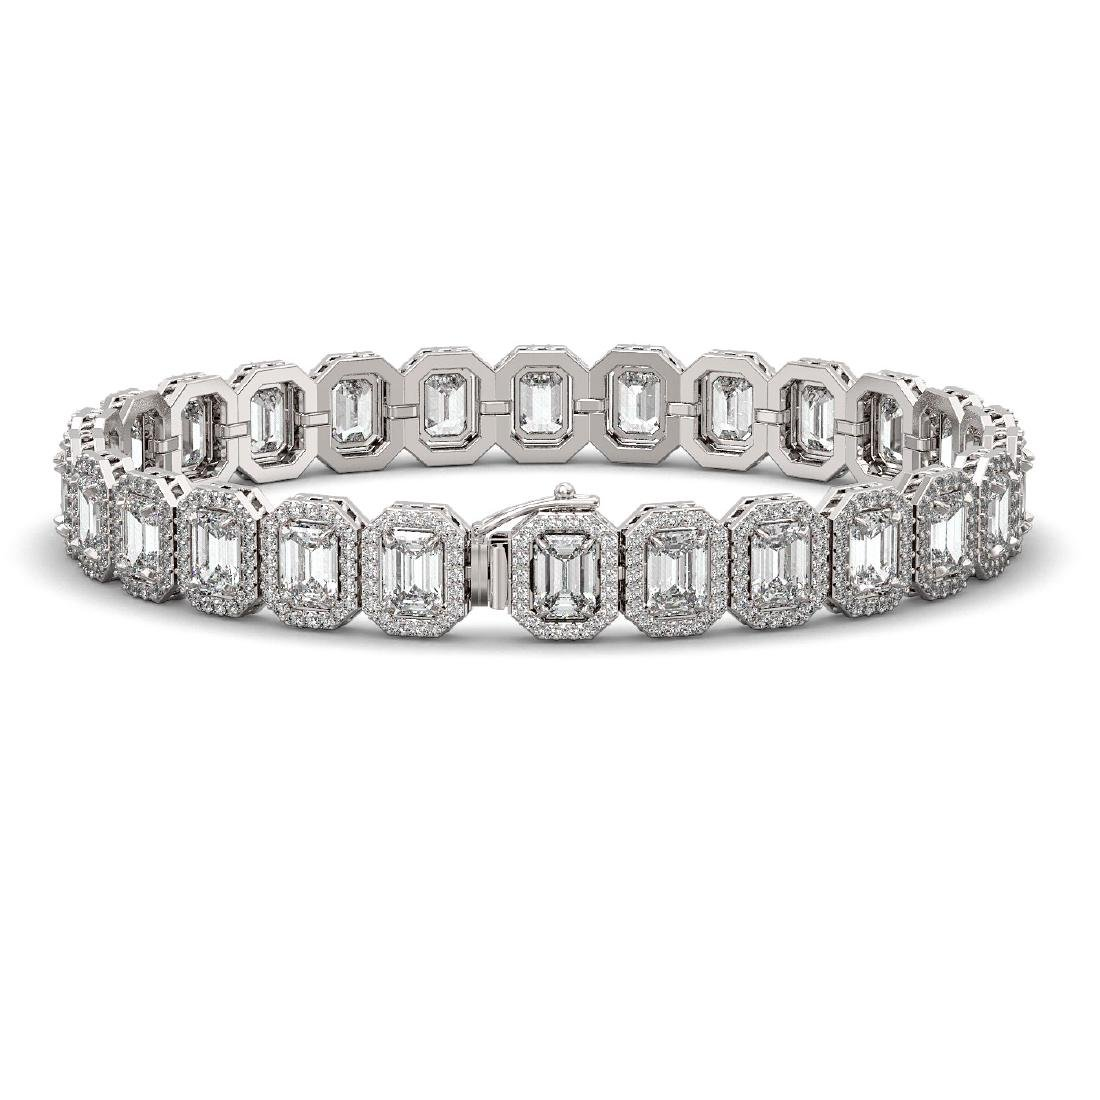 20.25 CTW Emerald Cut Diamond Designer Bracelet 18K - 2